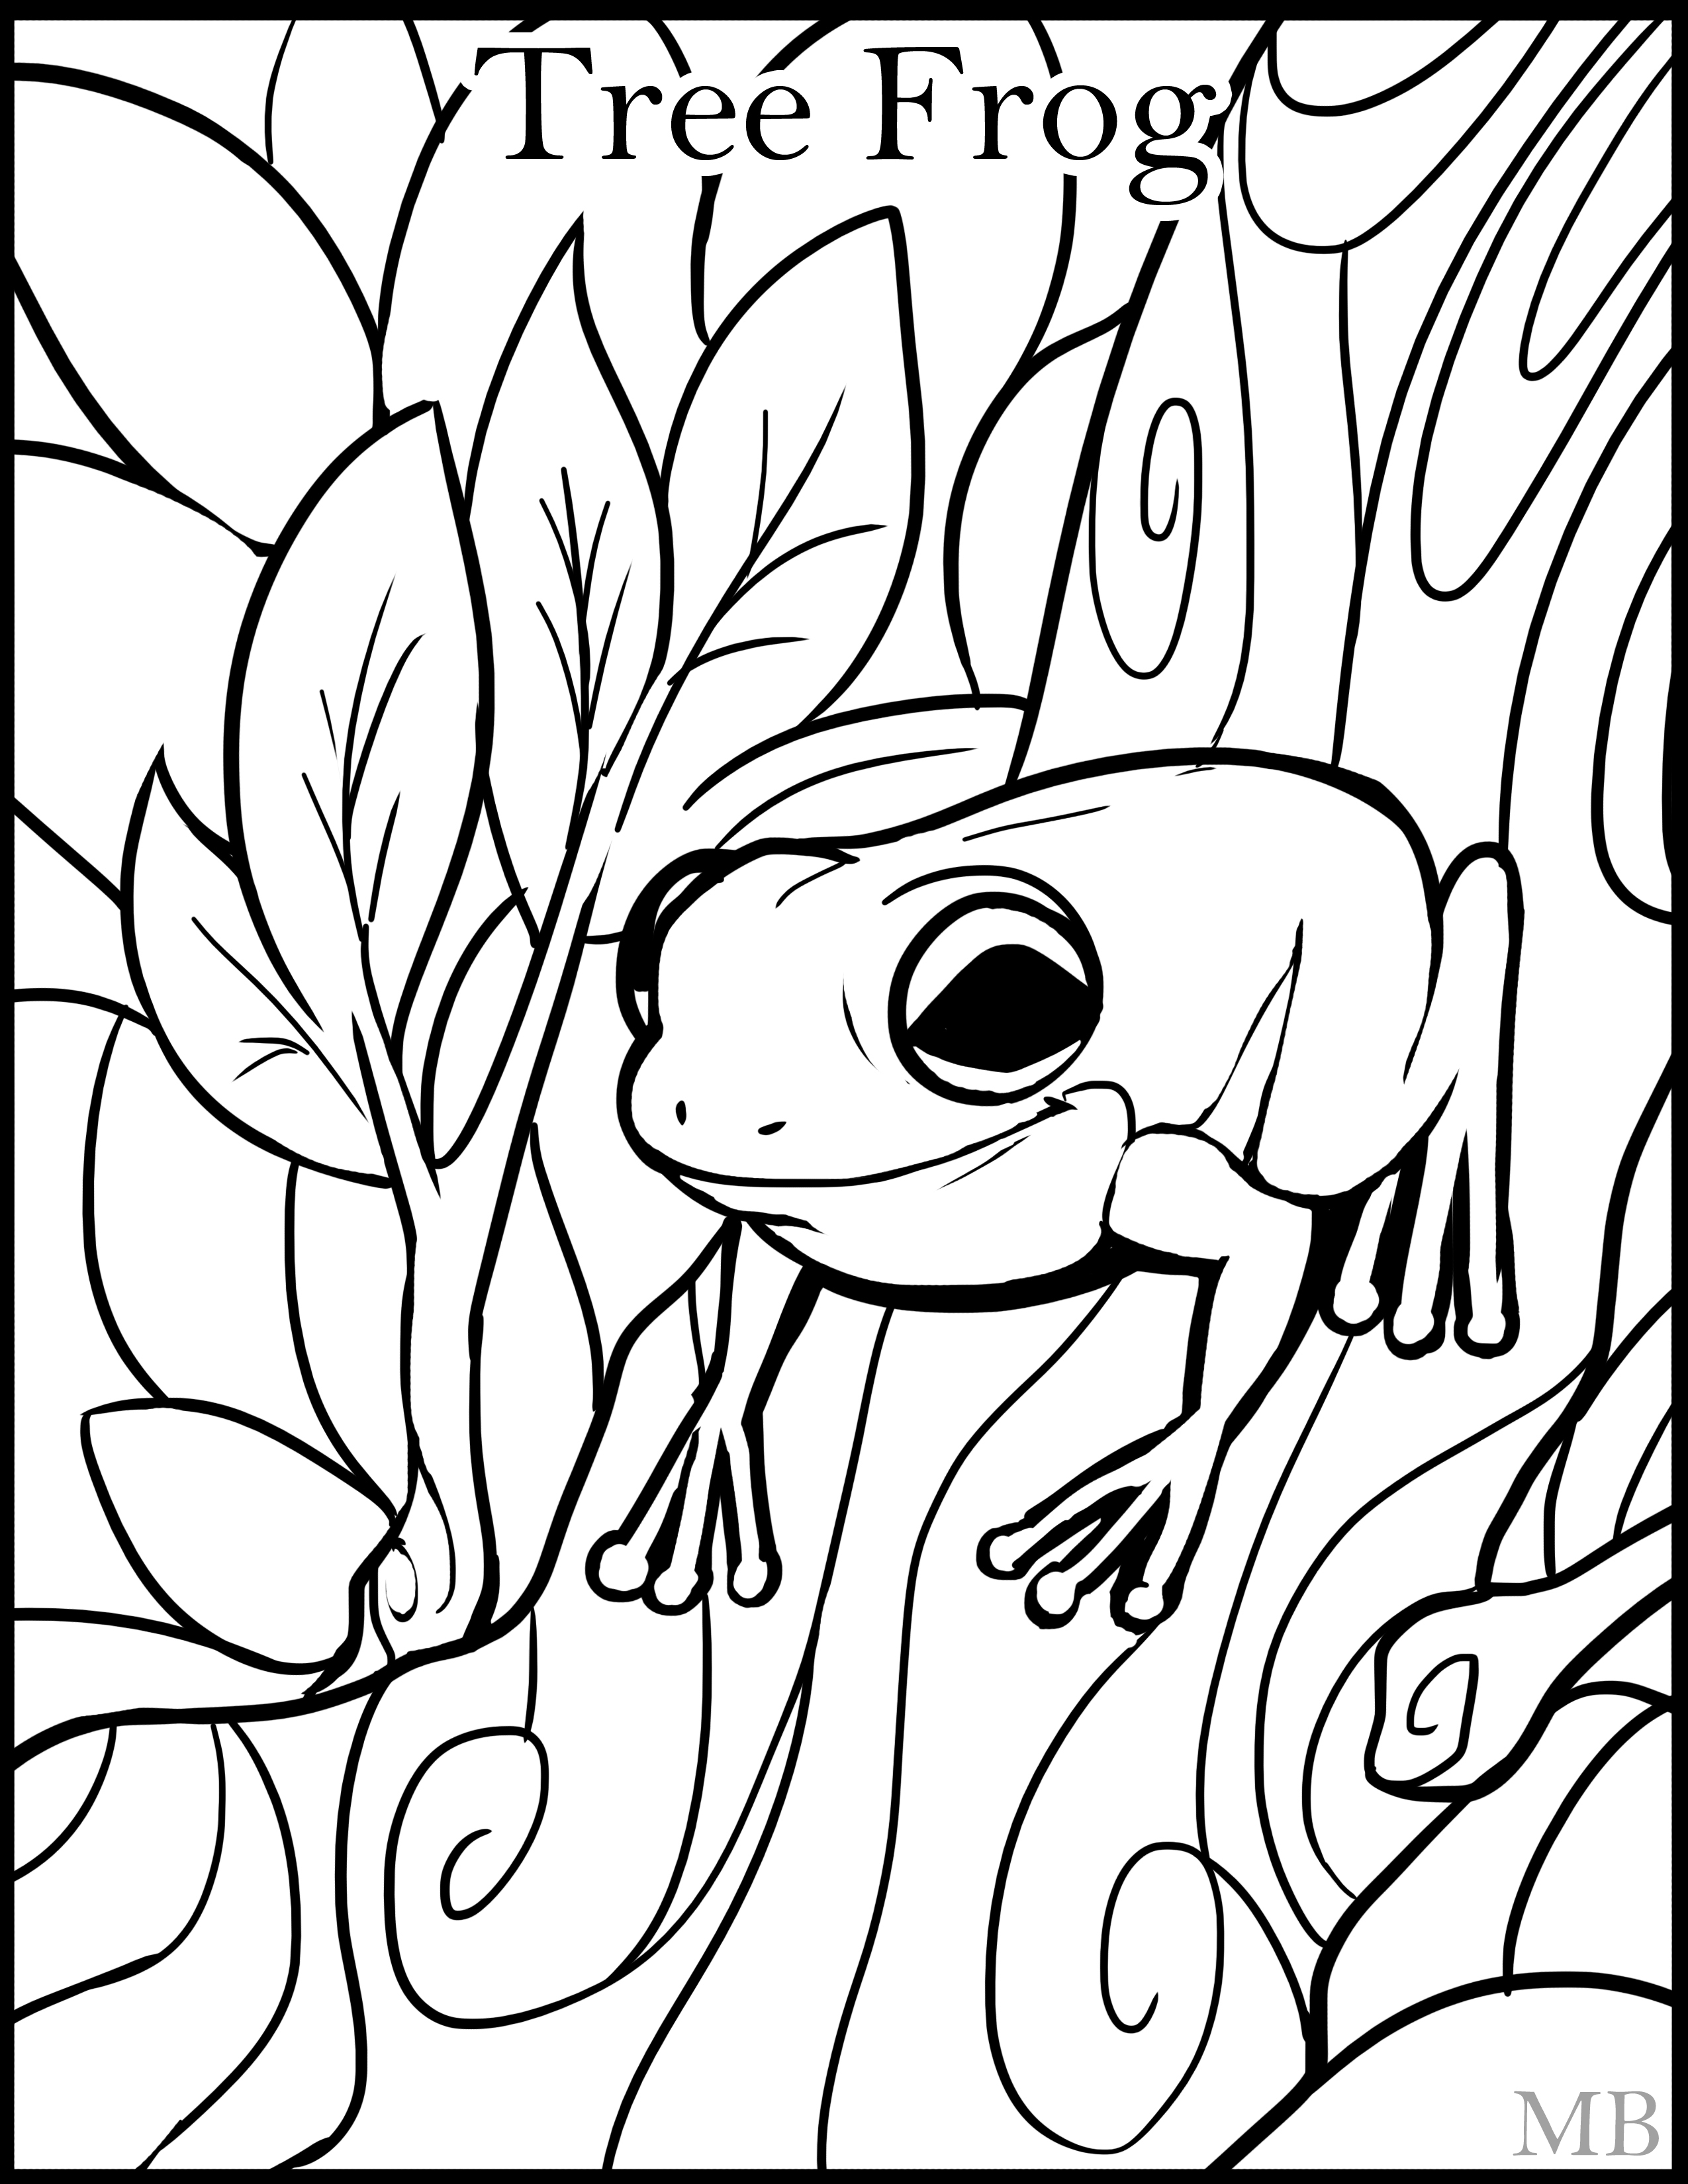 Realistic Frog Coloring Pages | Free download on ClipArtMag